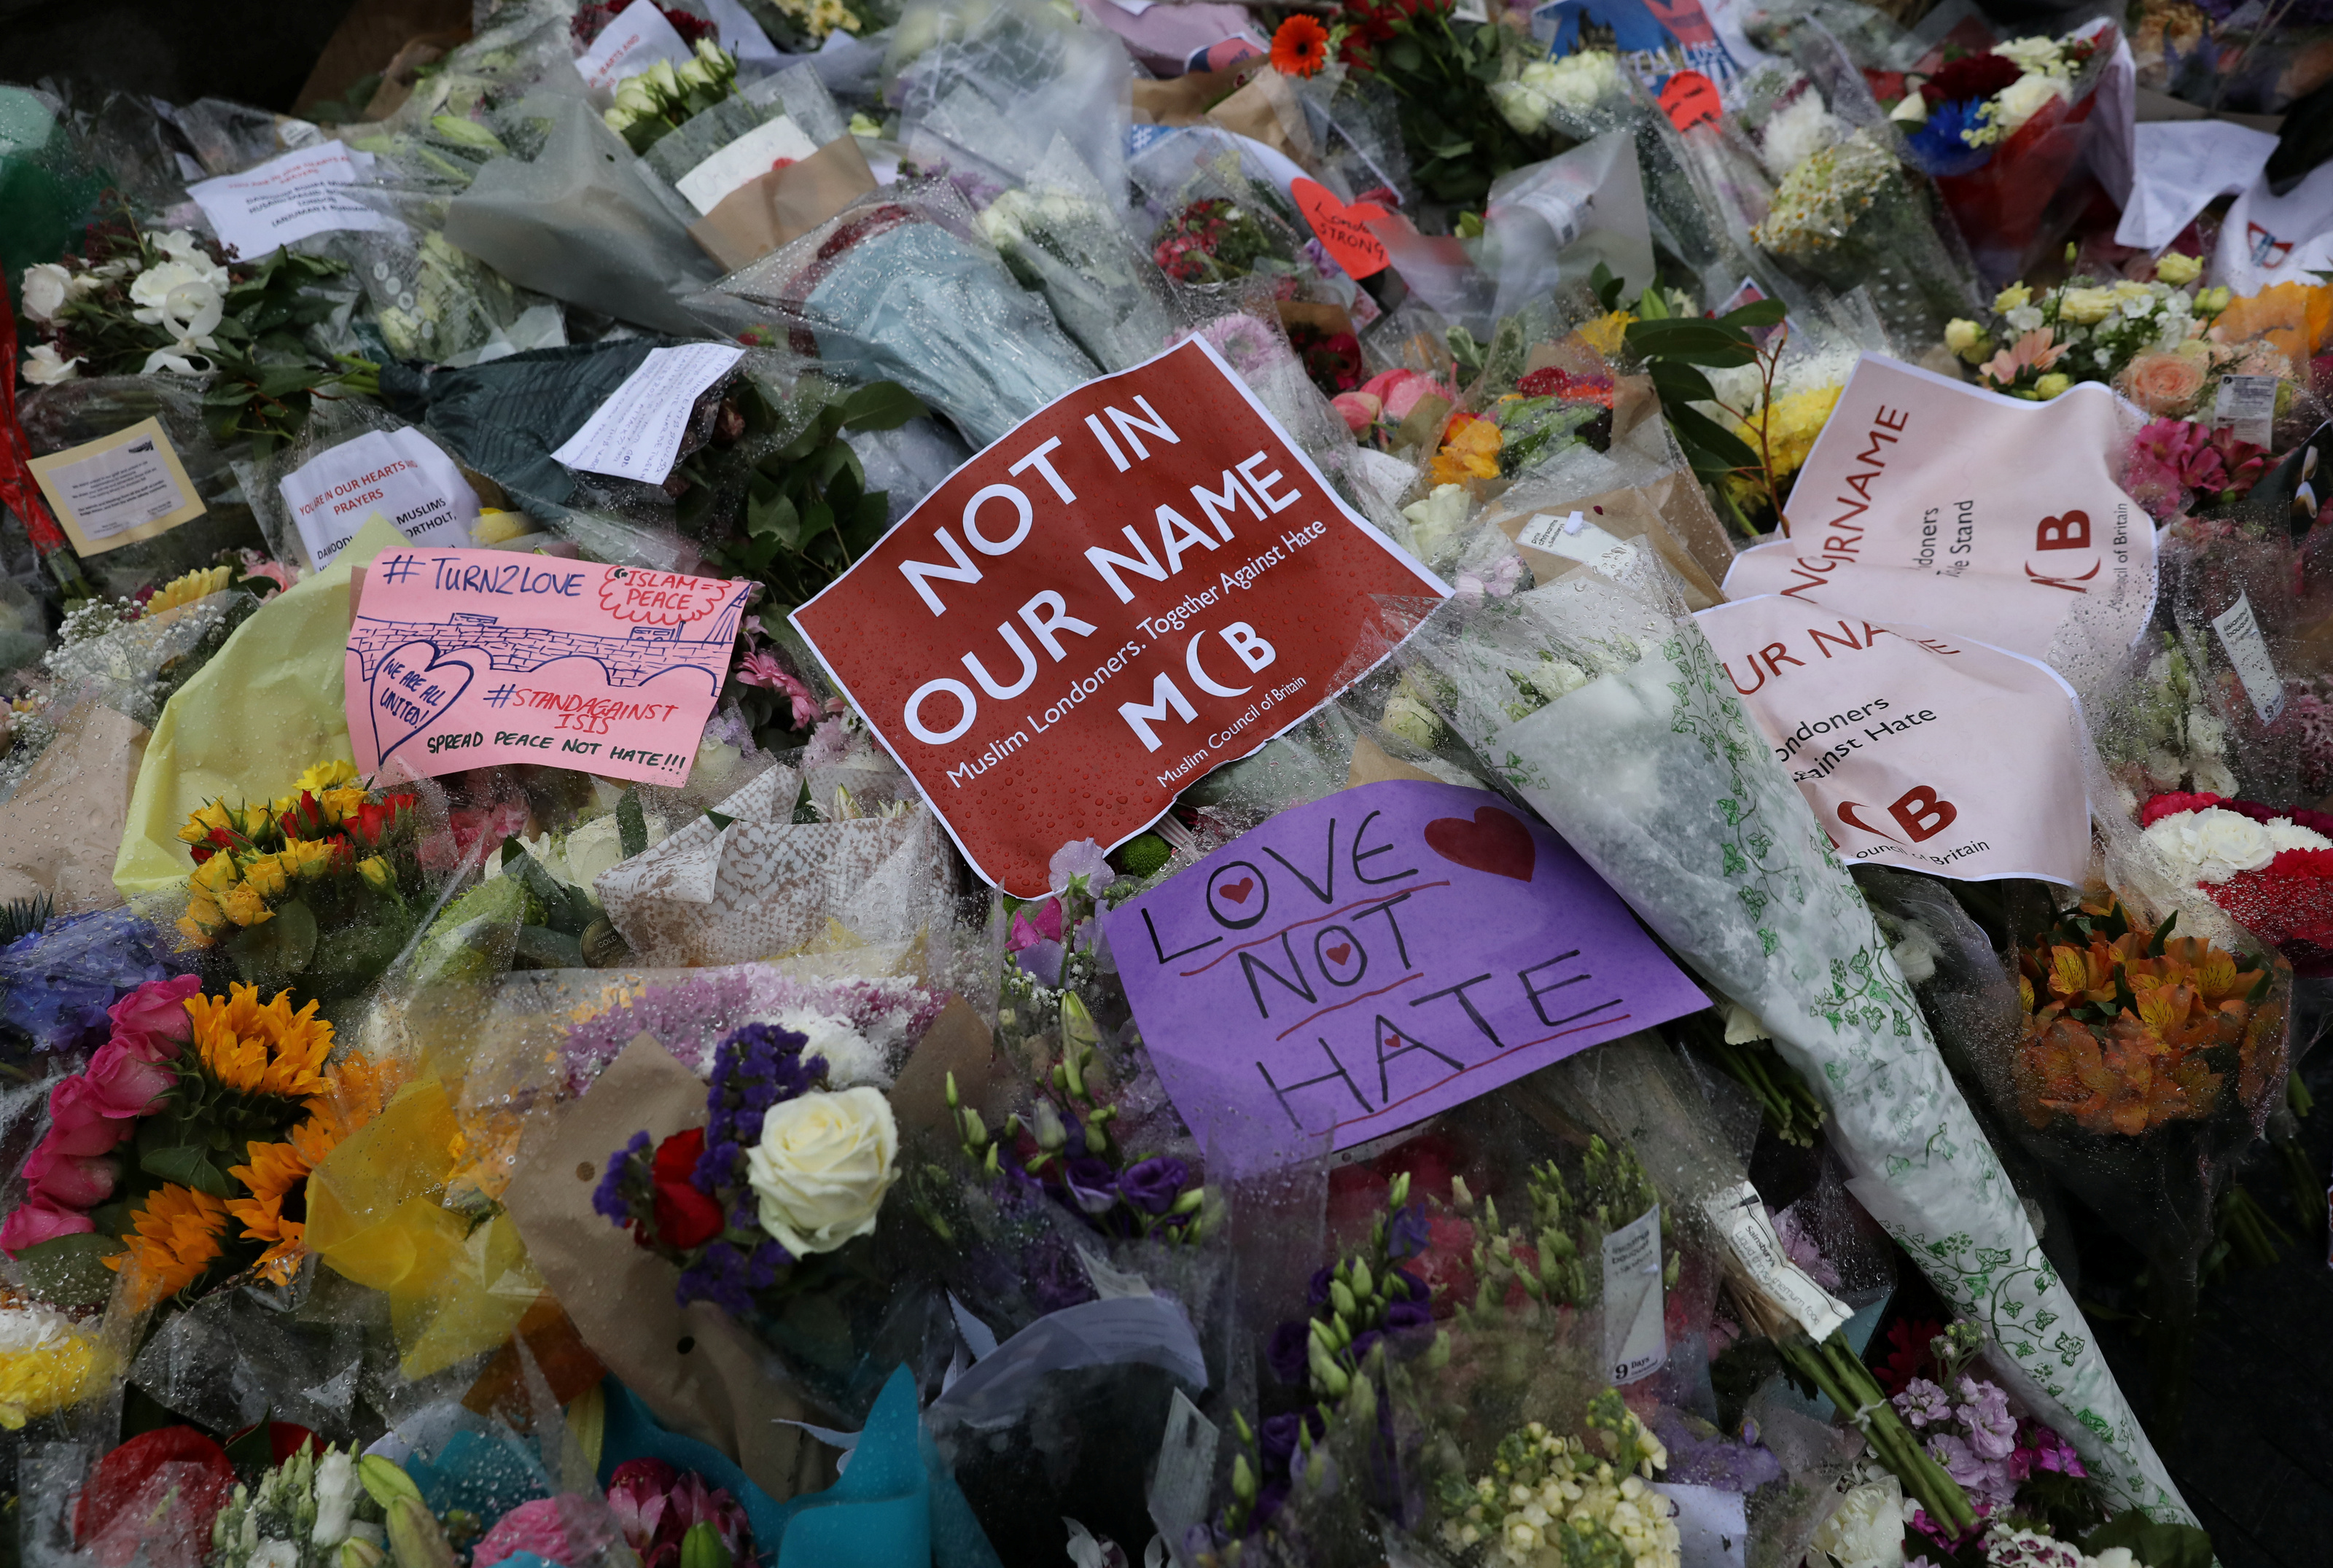 Floral tributes lie on the ground after a vigil to remember the victims of the attack on London Bridge and Borough Market, at Potters Field Park, in central London, Britain, June 5, 2017.